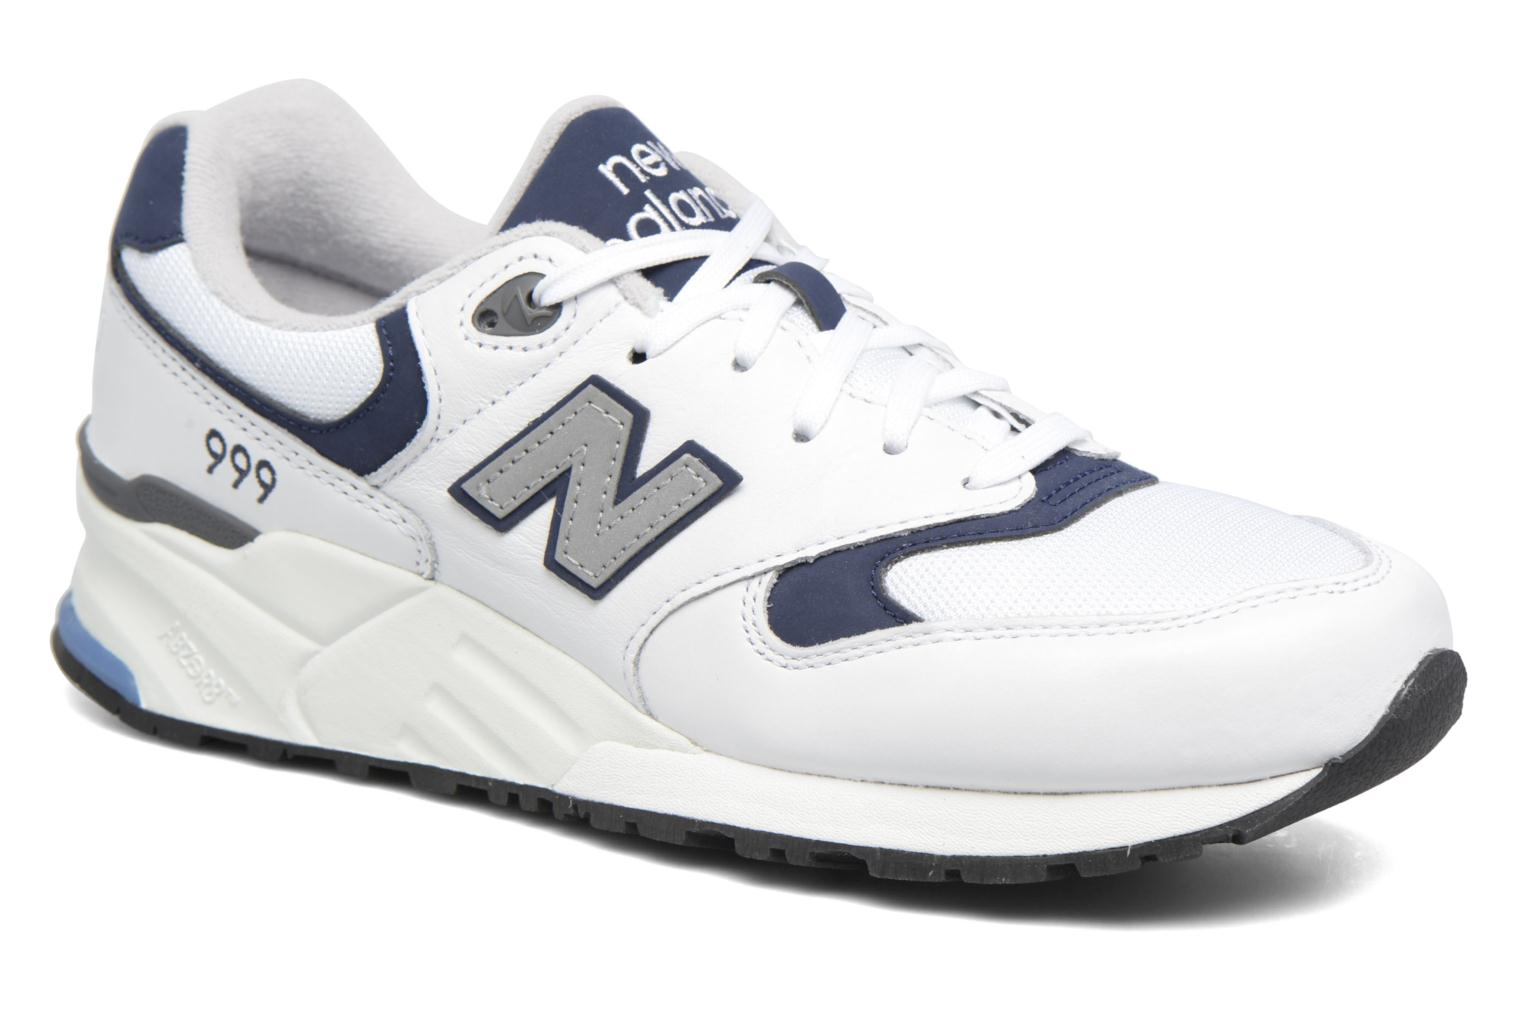 Marques Chaussure homme New Balance homme ML999 Luc White/Navy